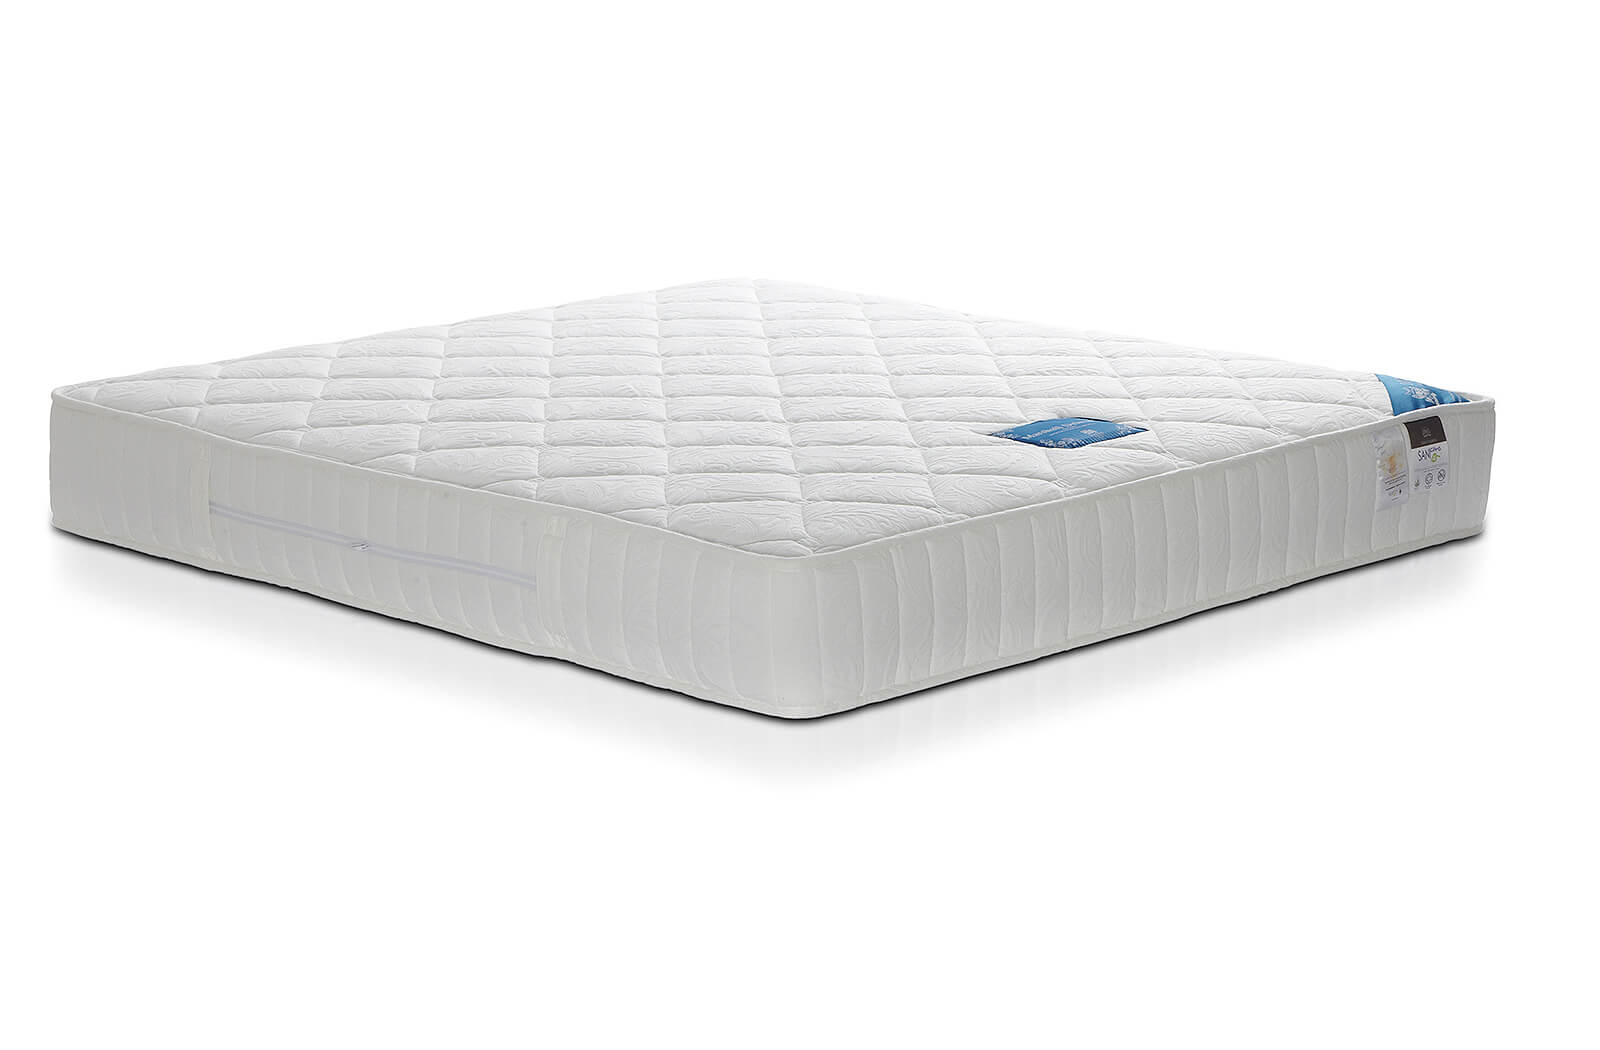 Lotus Mattress Marshall Deluxe I